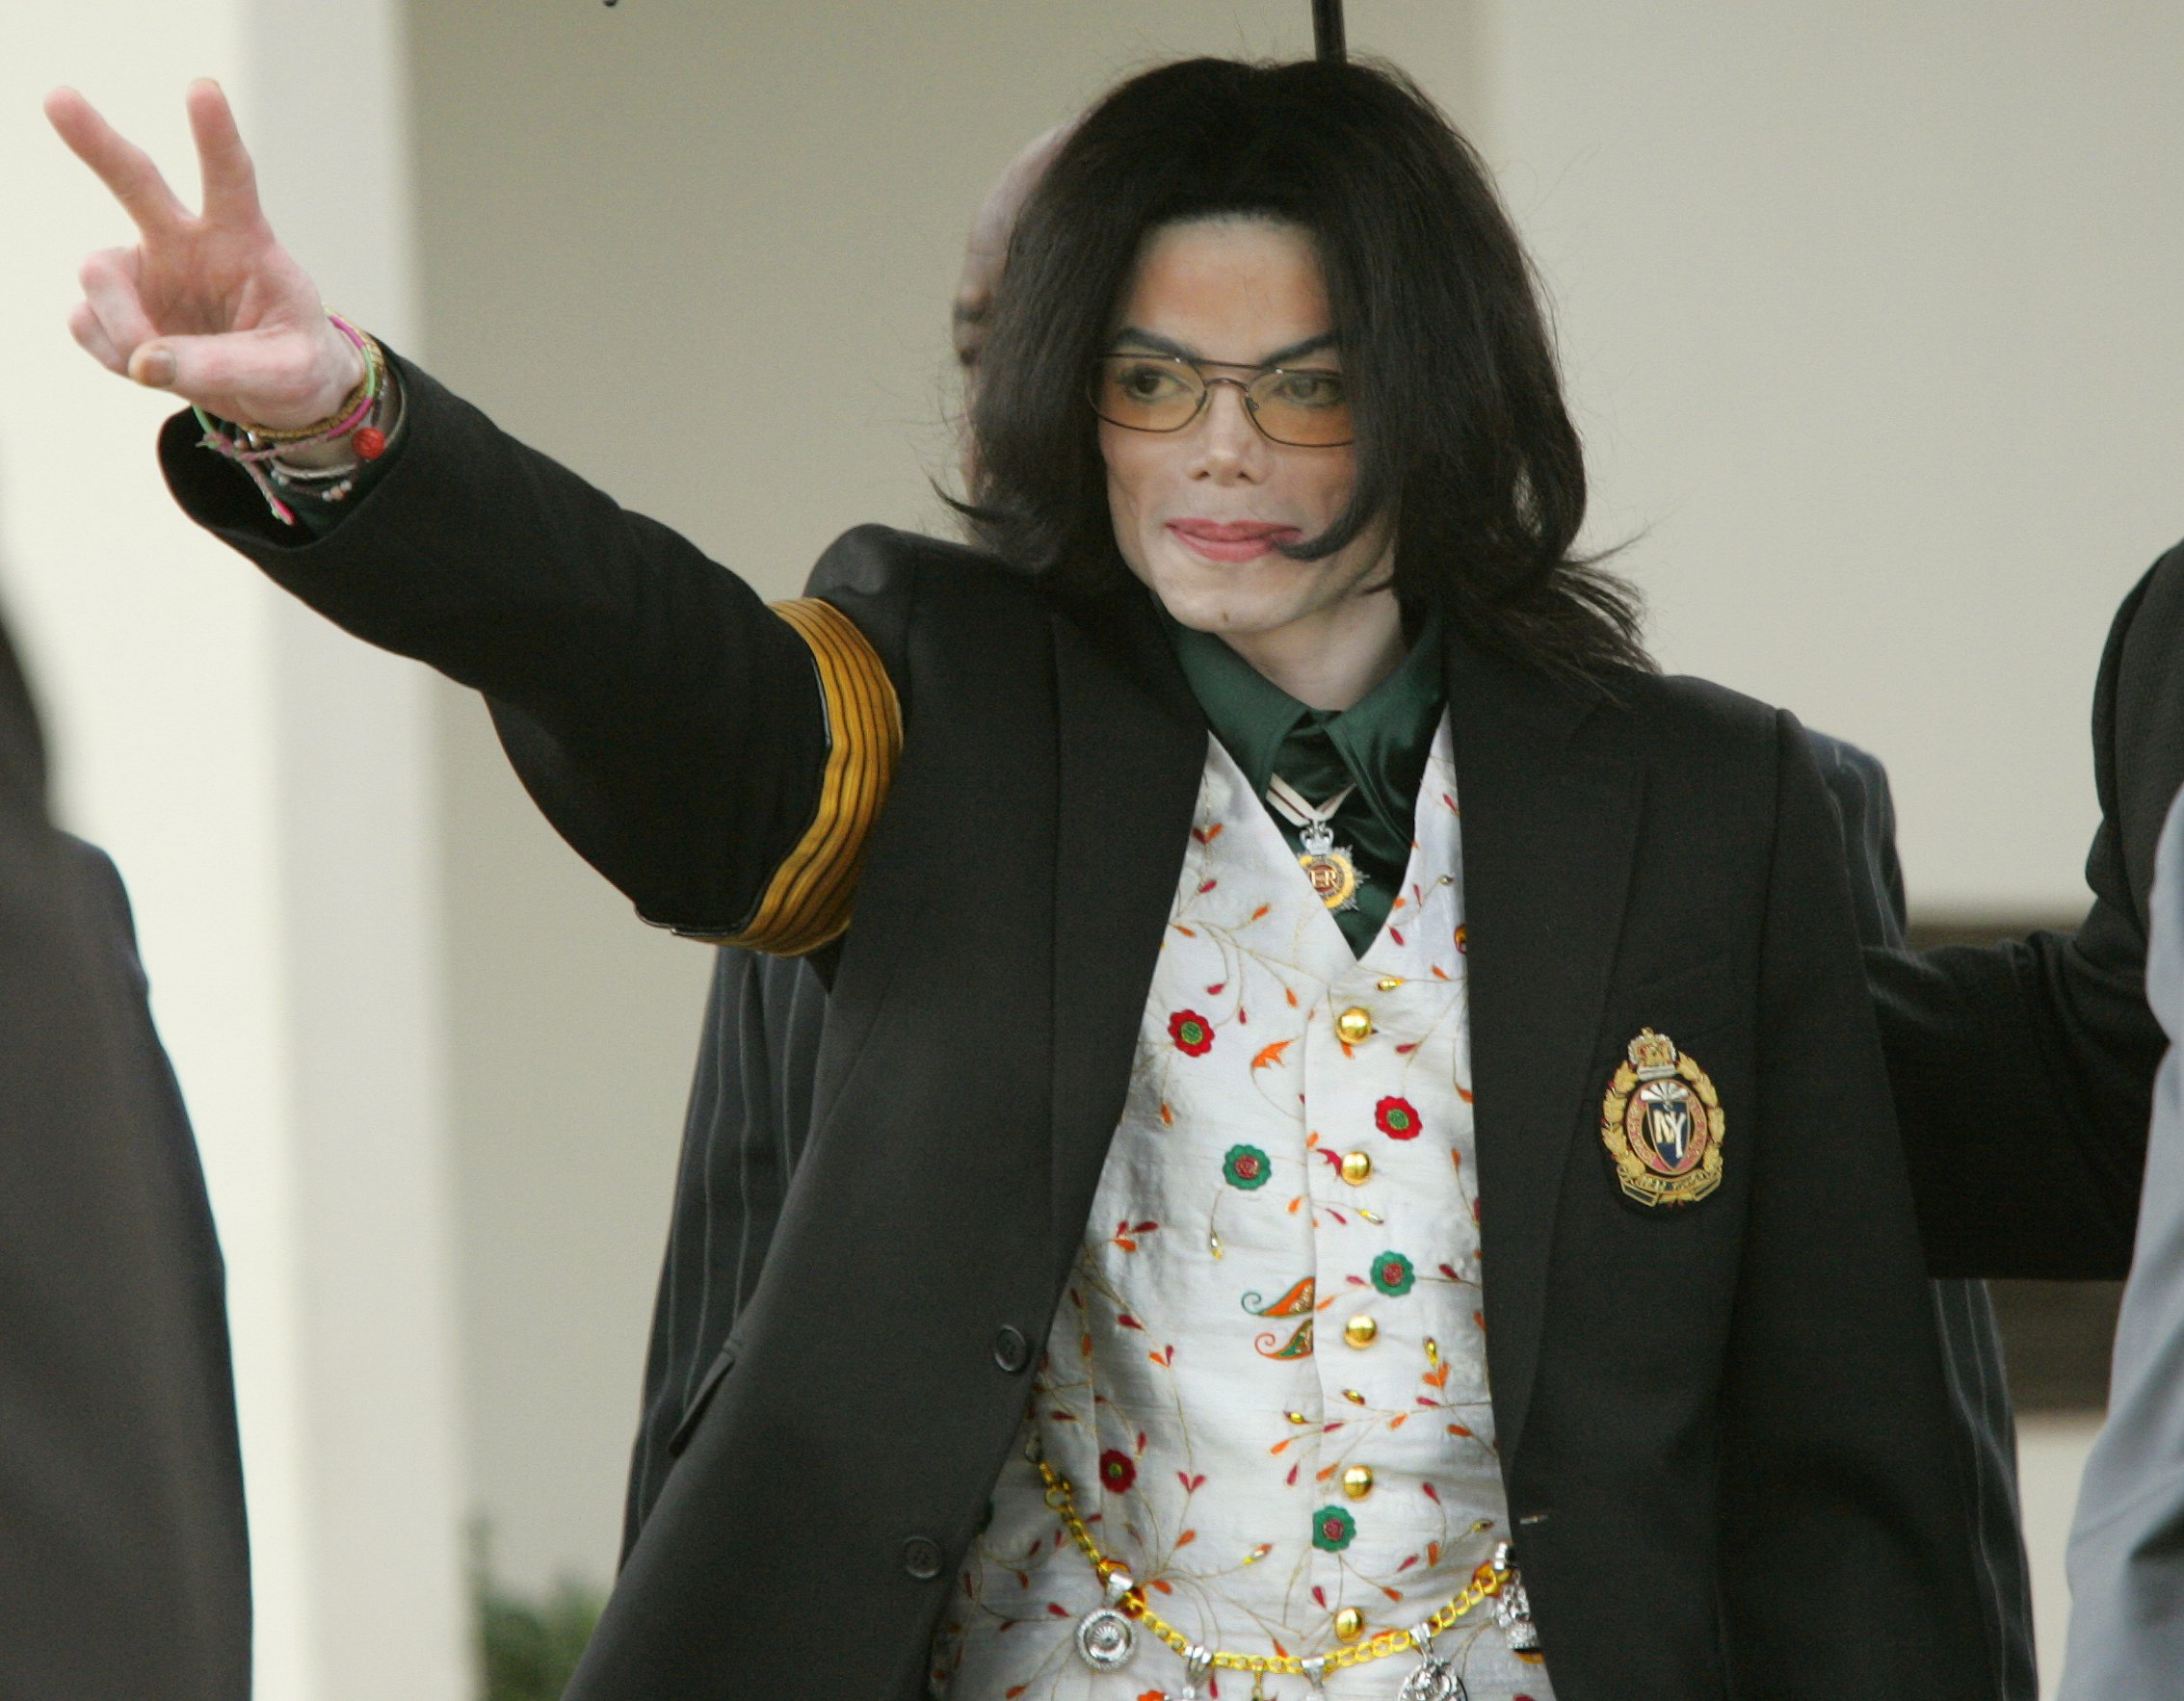 Pop singer Michael Jackson gestures as he leaves the Santa Barbara County Courts for the third day of his child molestation trial. The entertainer faces ten counts of felony molestation of a male minor at his Neverland Ranch. (Photo by Kimberly White/Corbis via Getty Images)